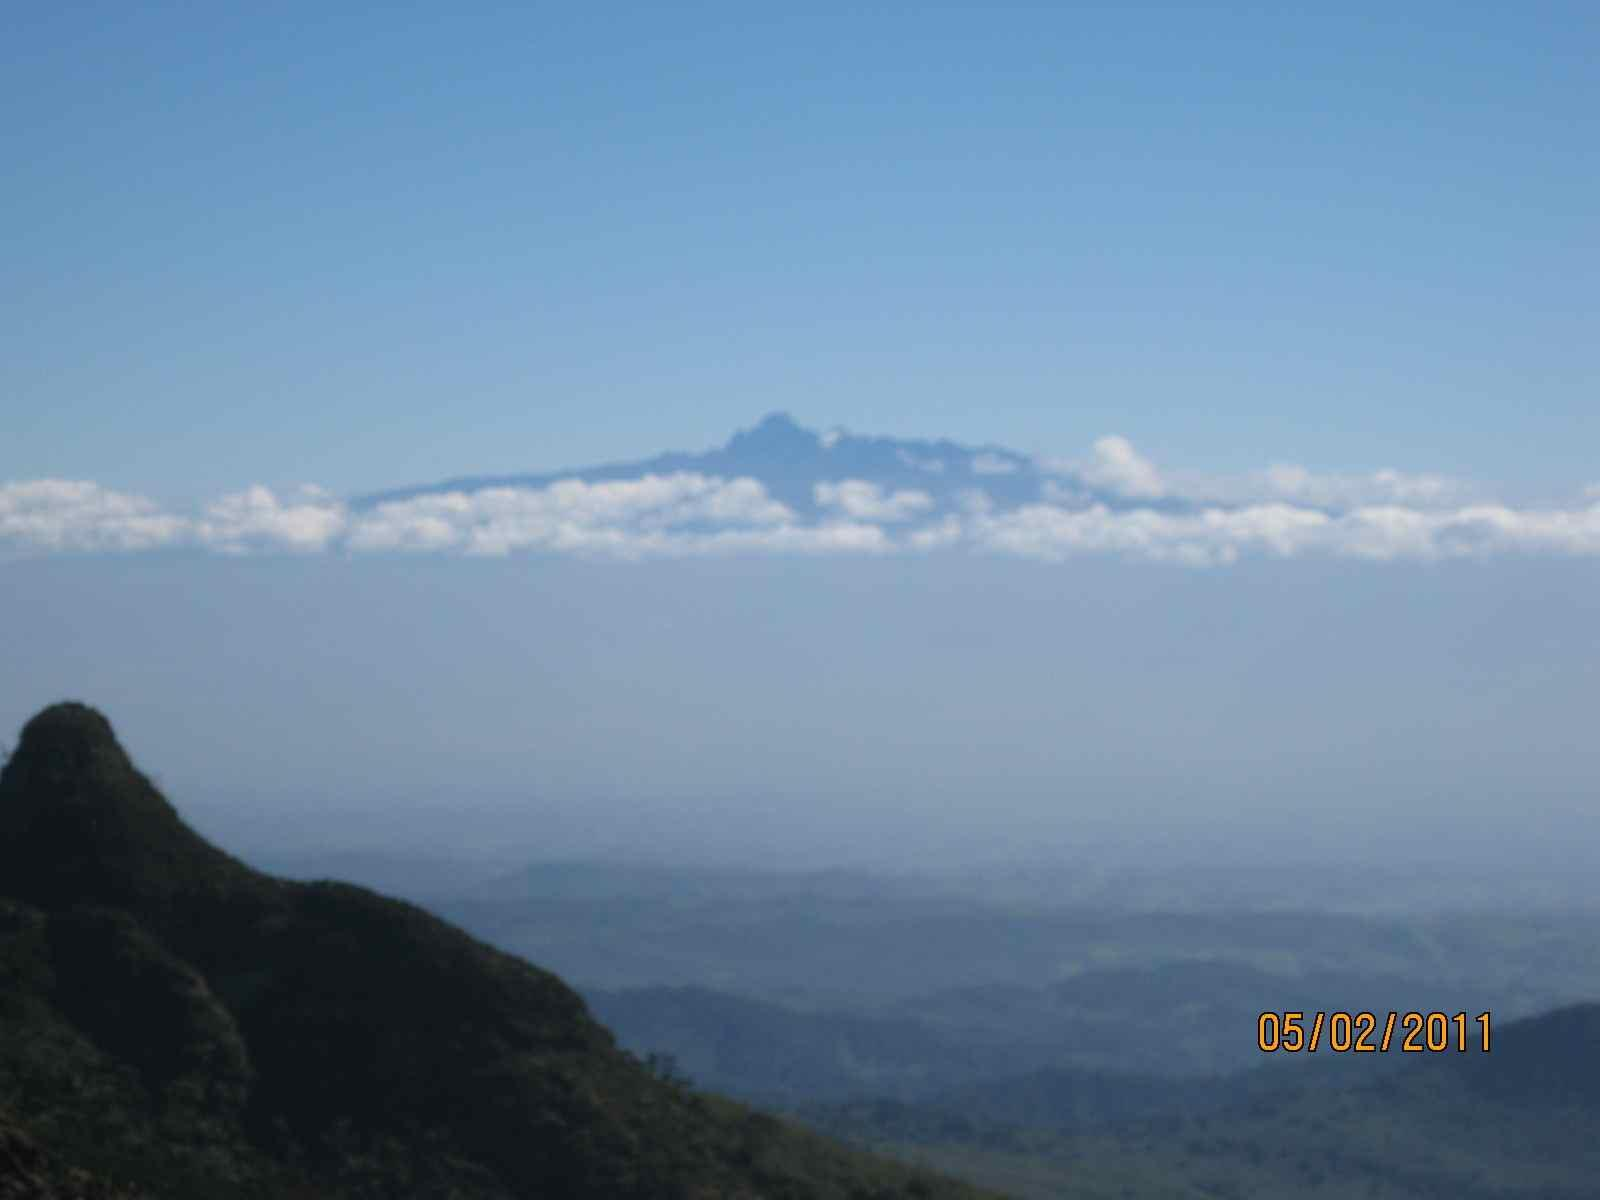 A view of Mt.Kenya from the Aberdares Ranges (Kinangop Peak) http://t.co/0ItzSnTre5